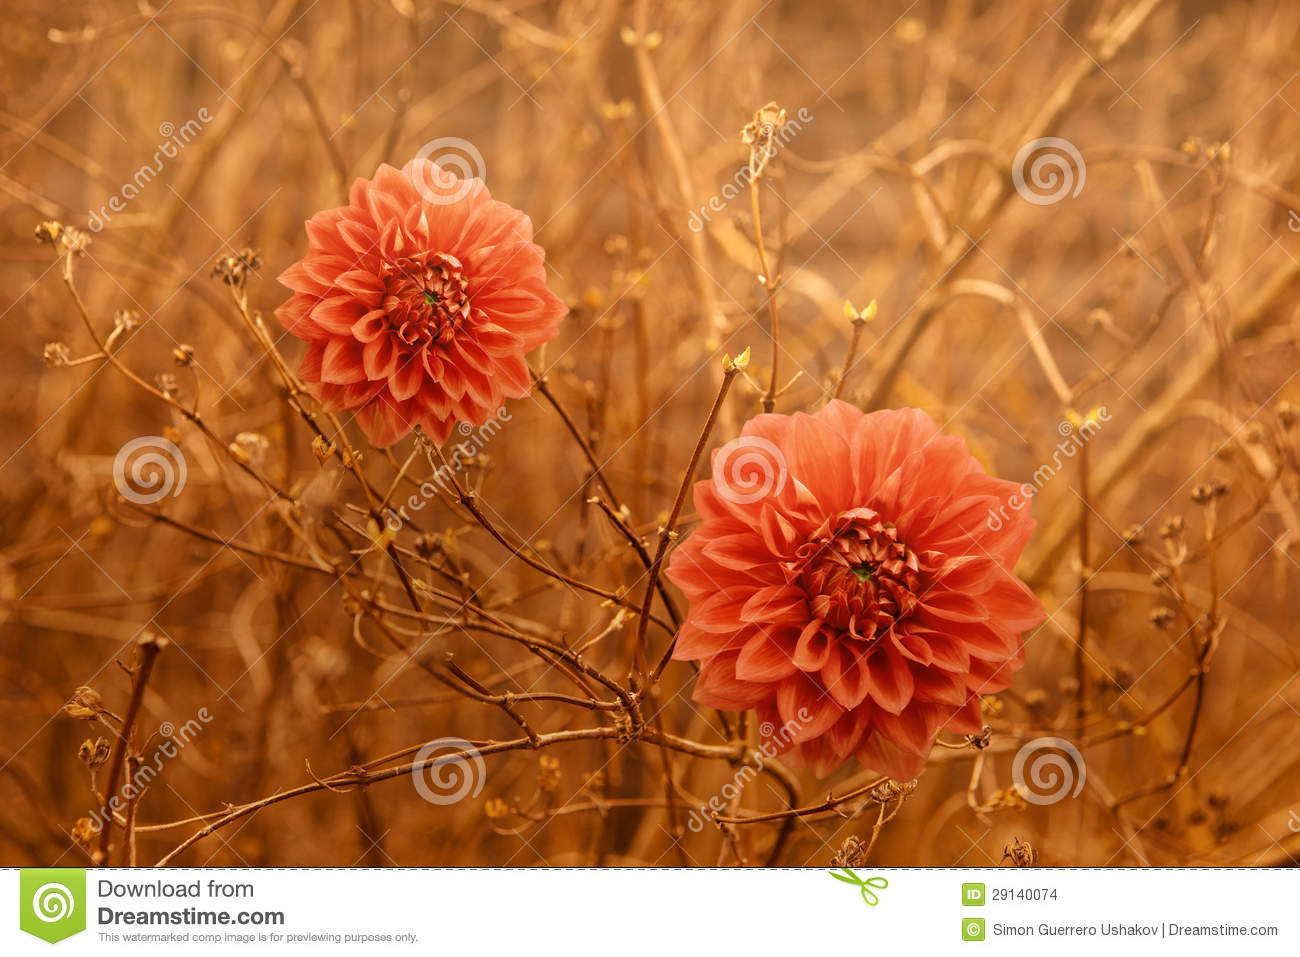 Fall Wallpaper With Pumpkins Two Orange Dahlia Autumn Flowers Over Brown Branches